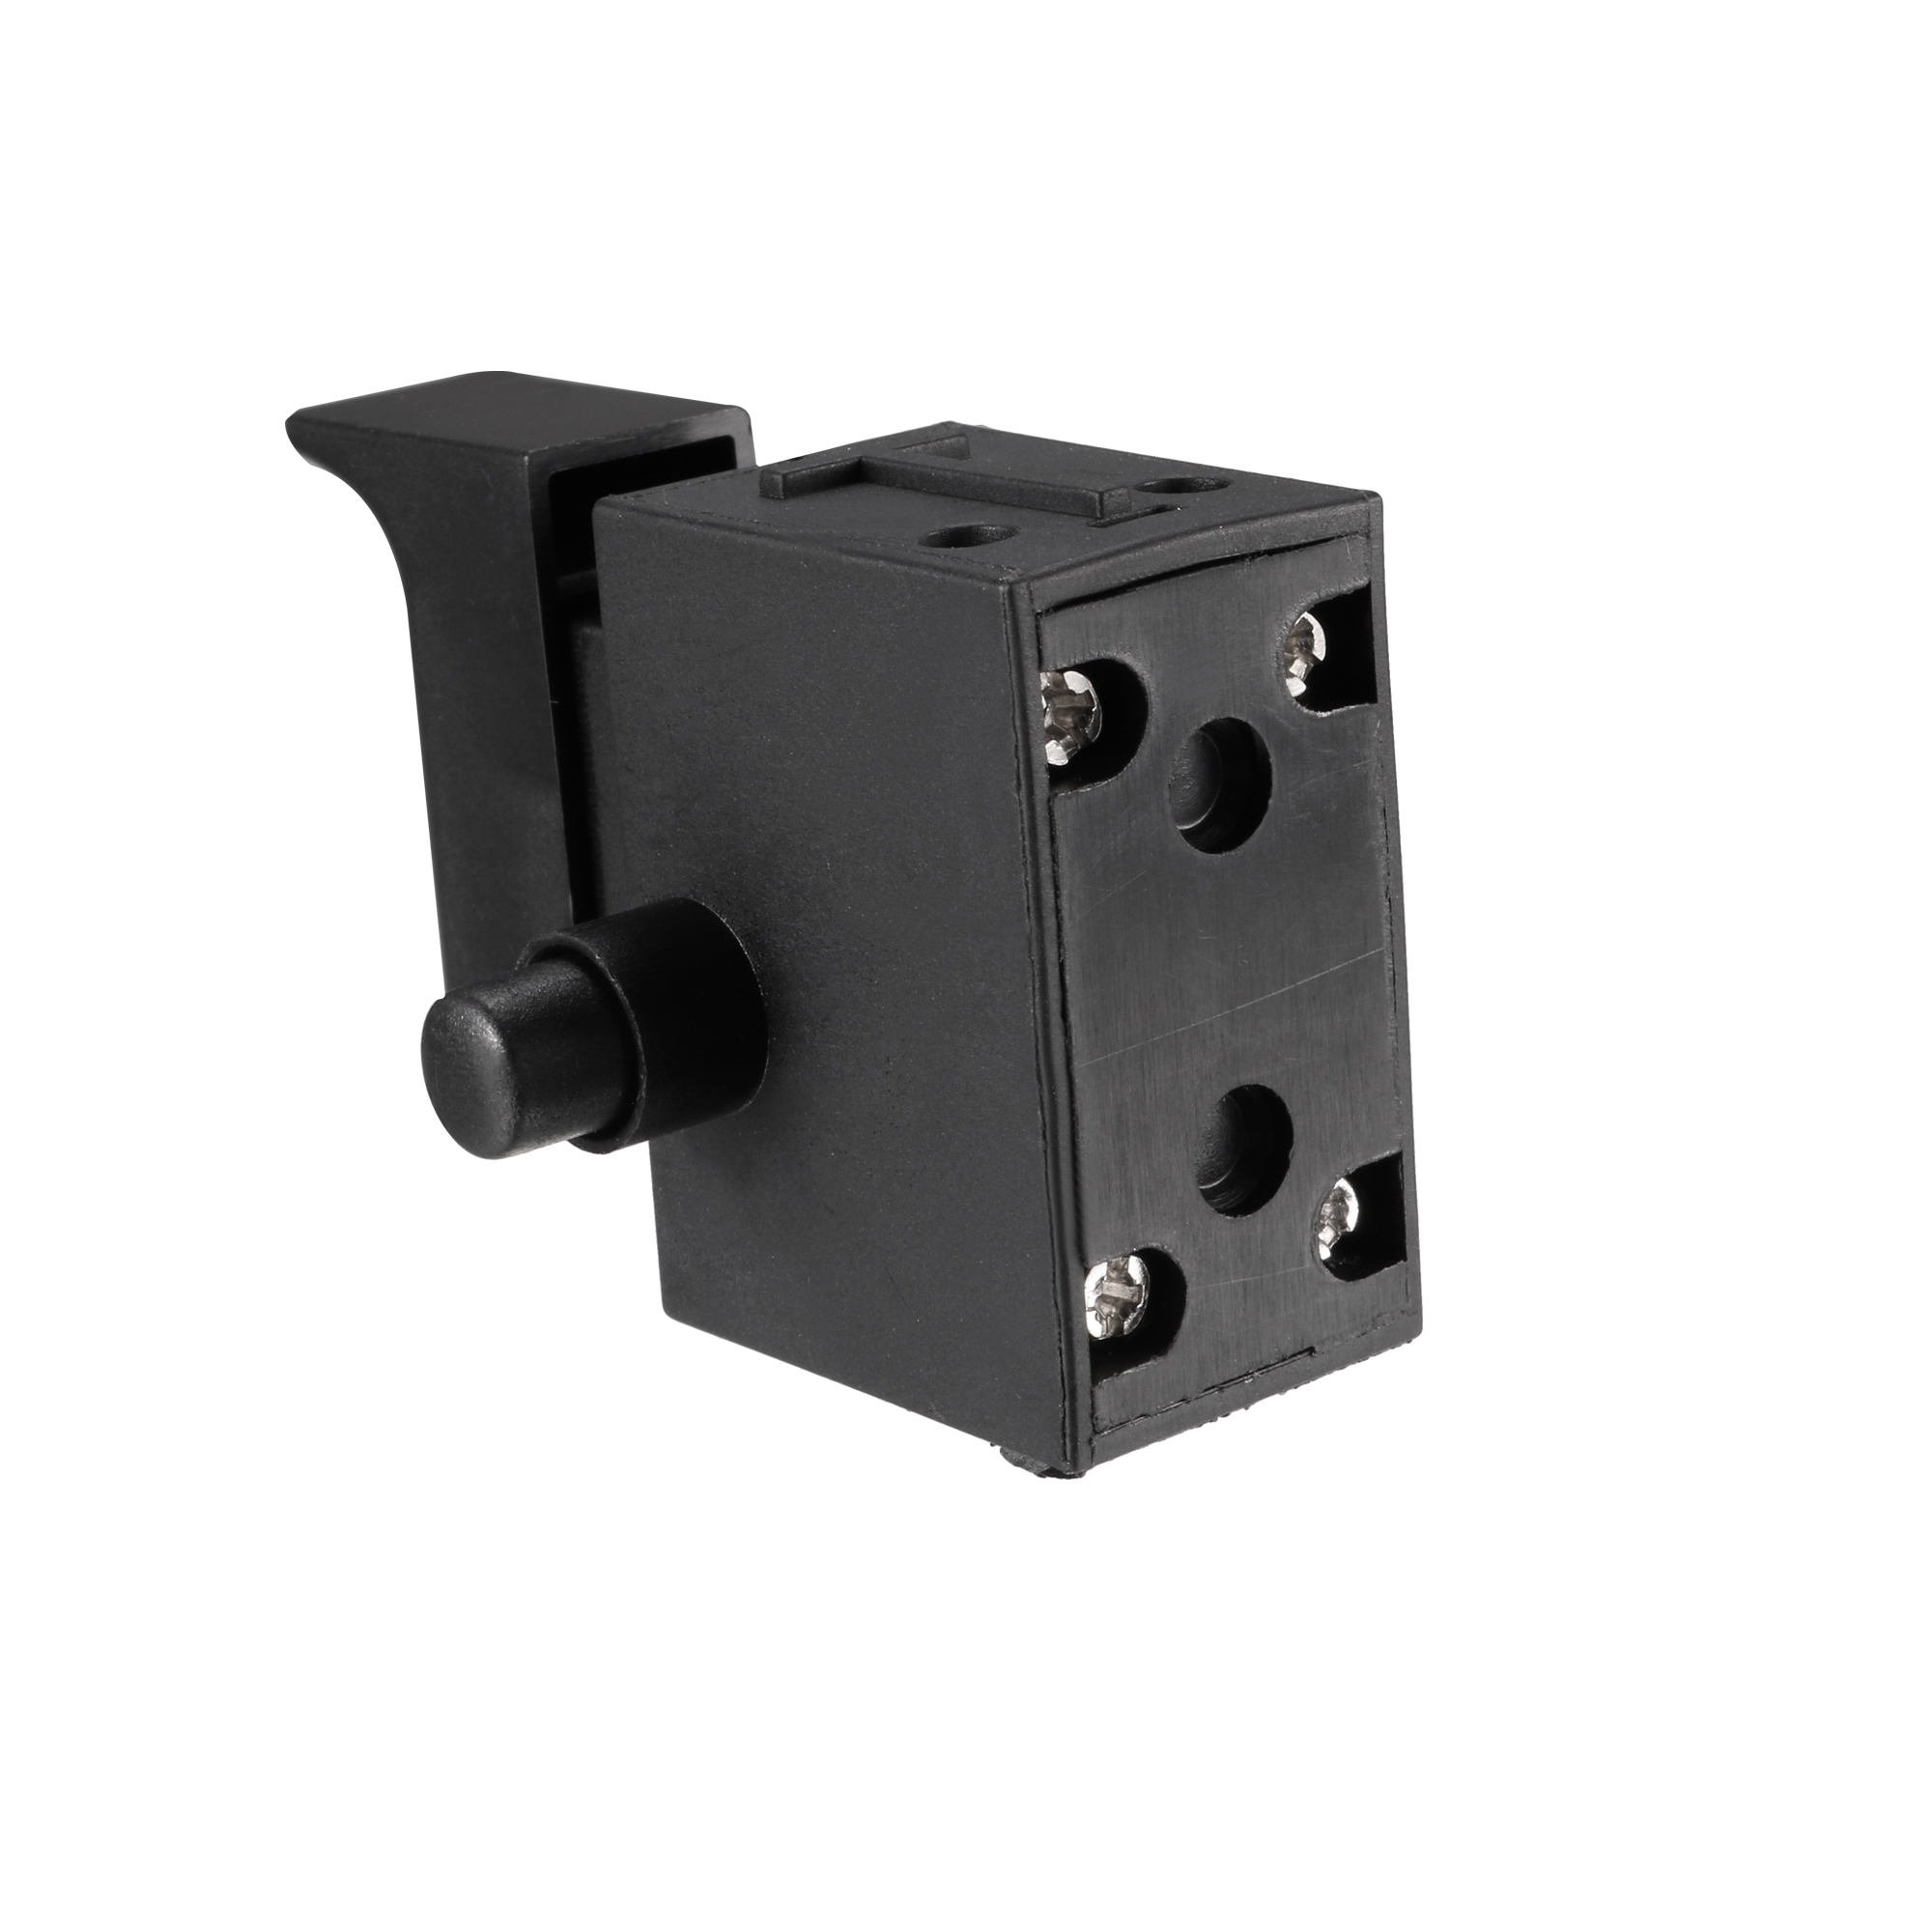 Electric Portable Drill Hammer Trigger Switch for 5A AC250V 6A Tool Power Speed Control FA2-6/2B - image 1 de 5